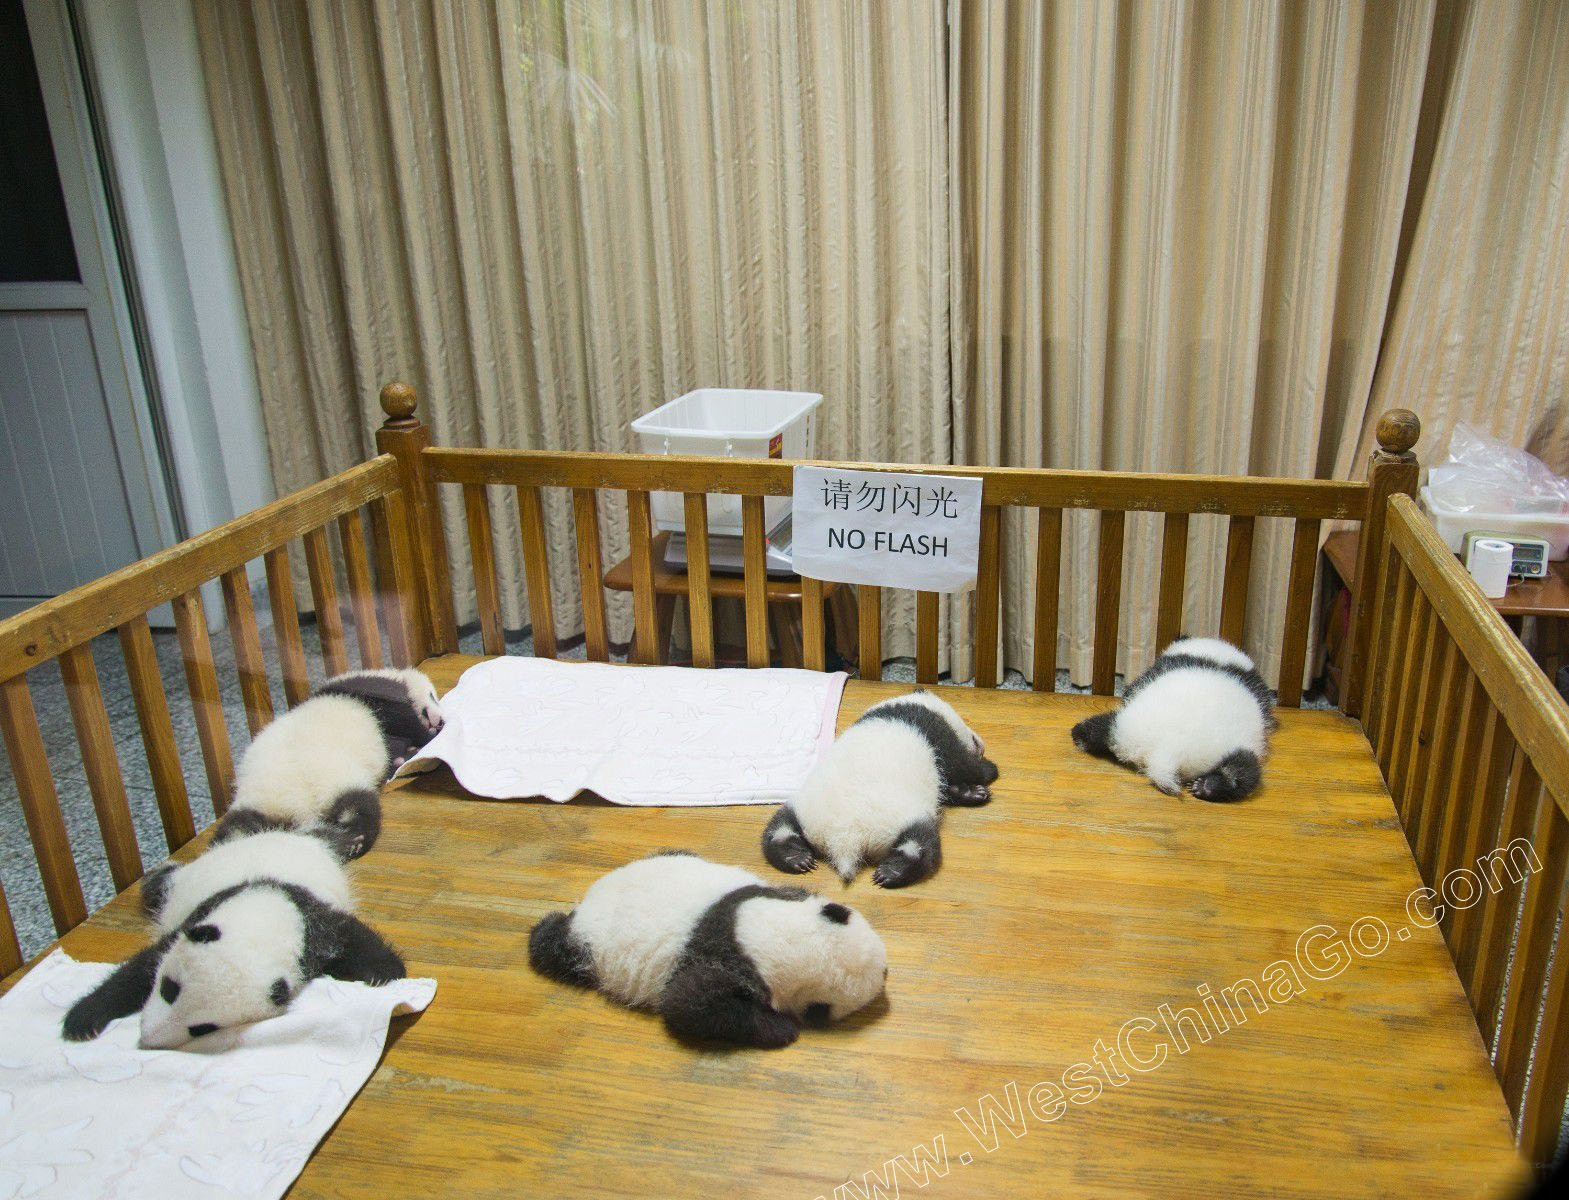 Chengdu Panda Breeding Center Tour